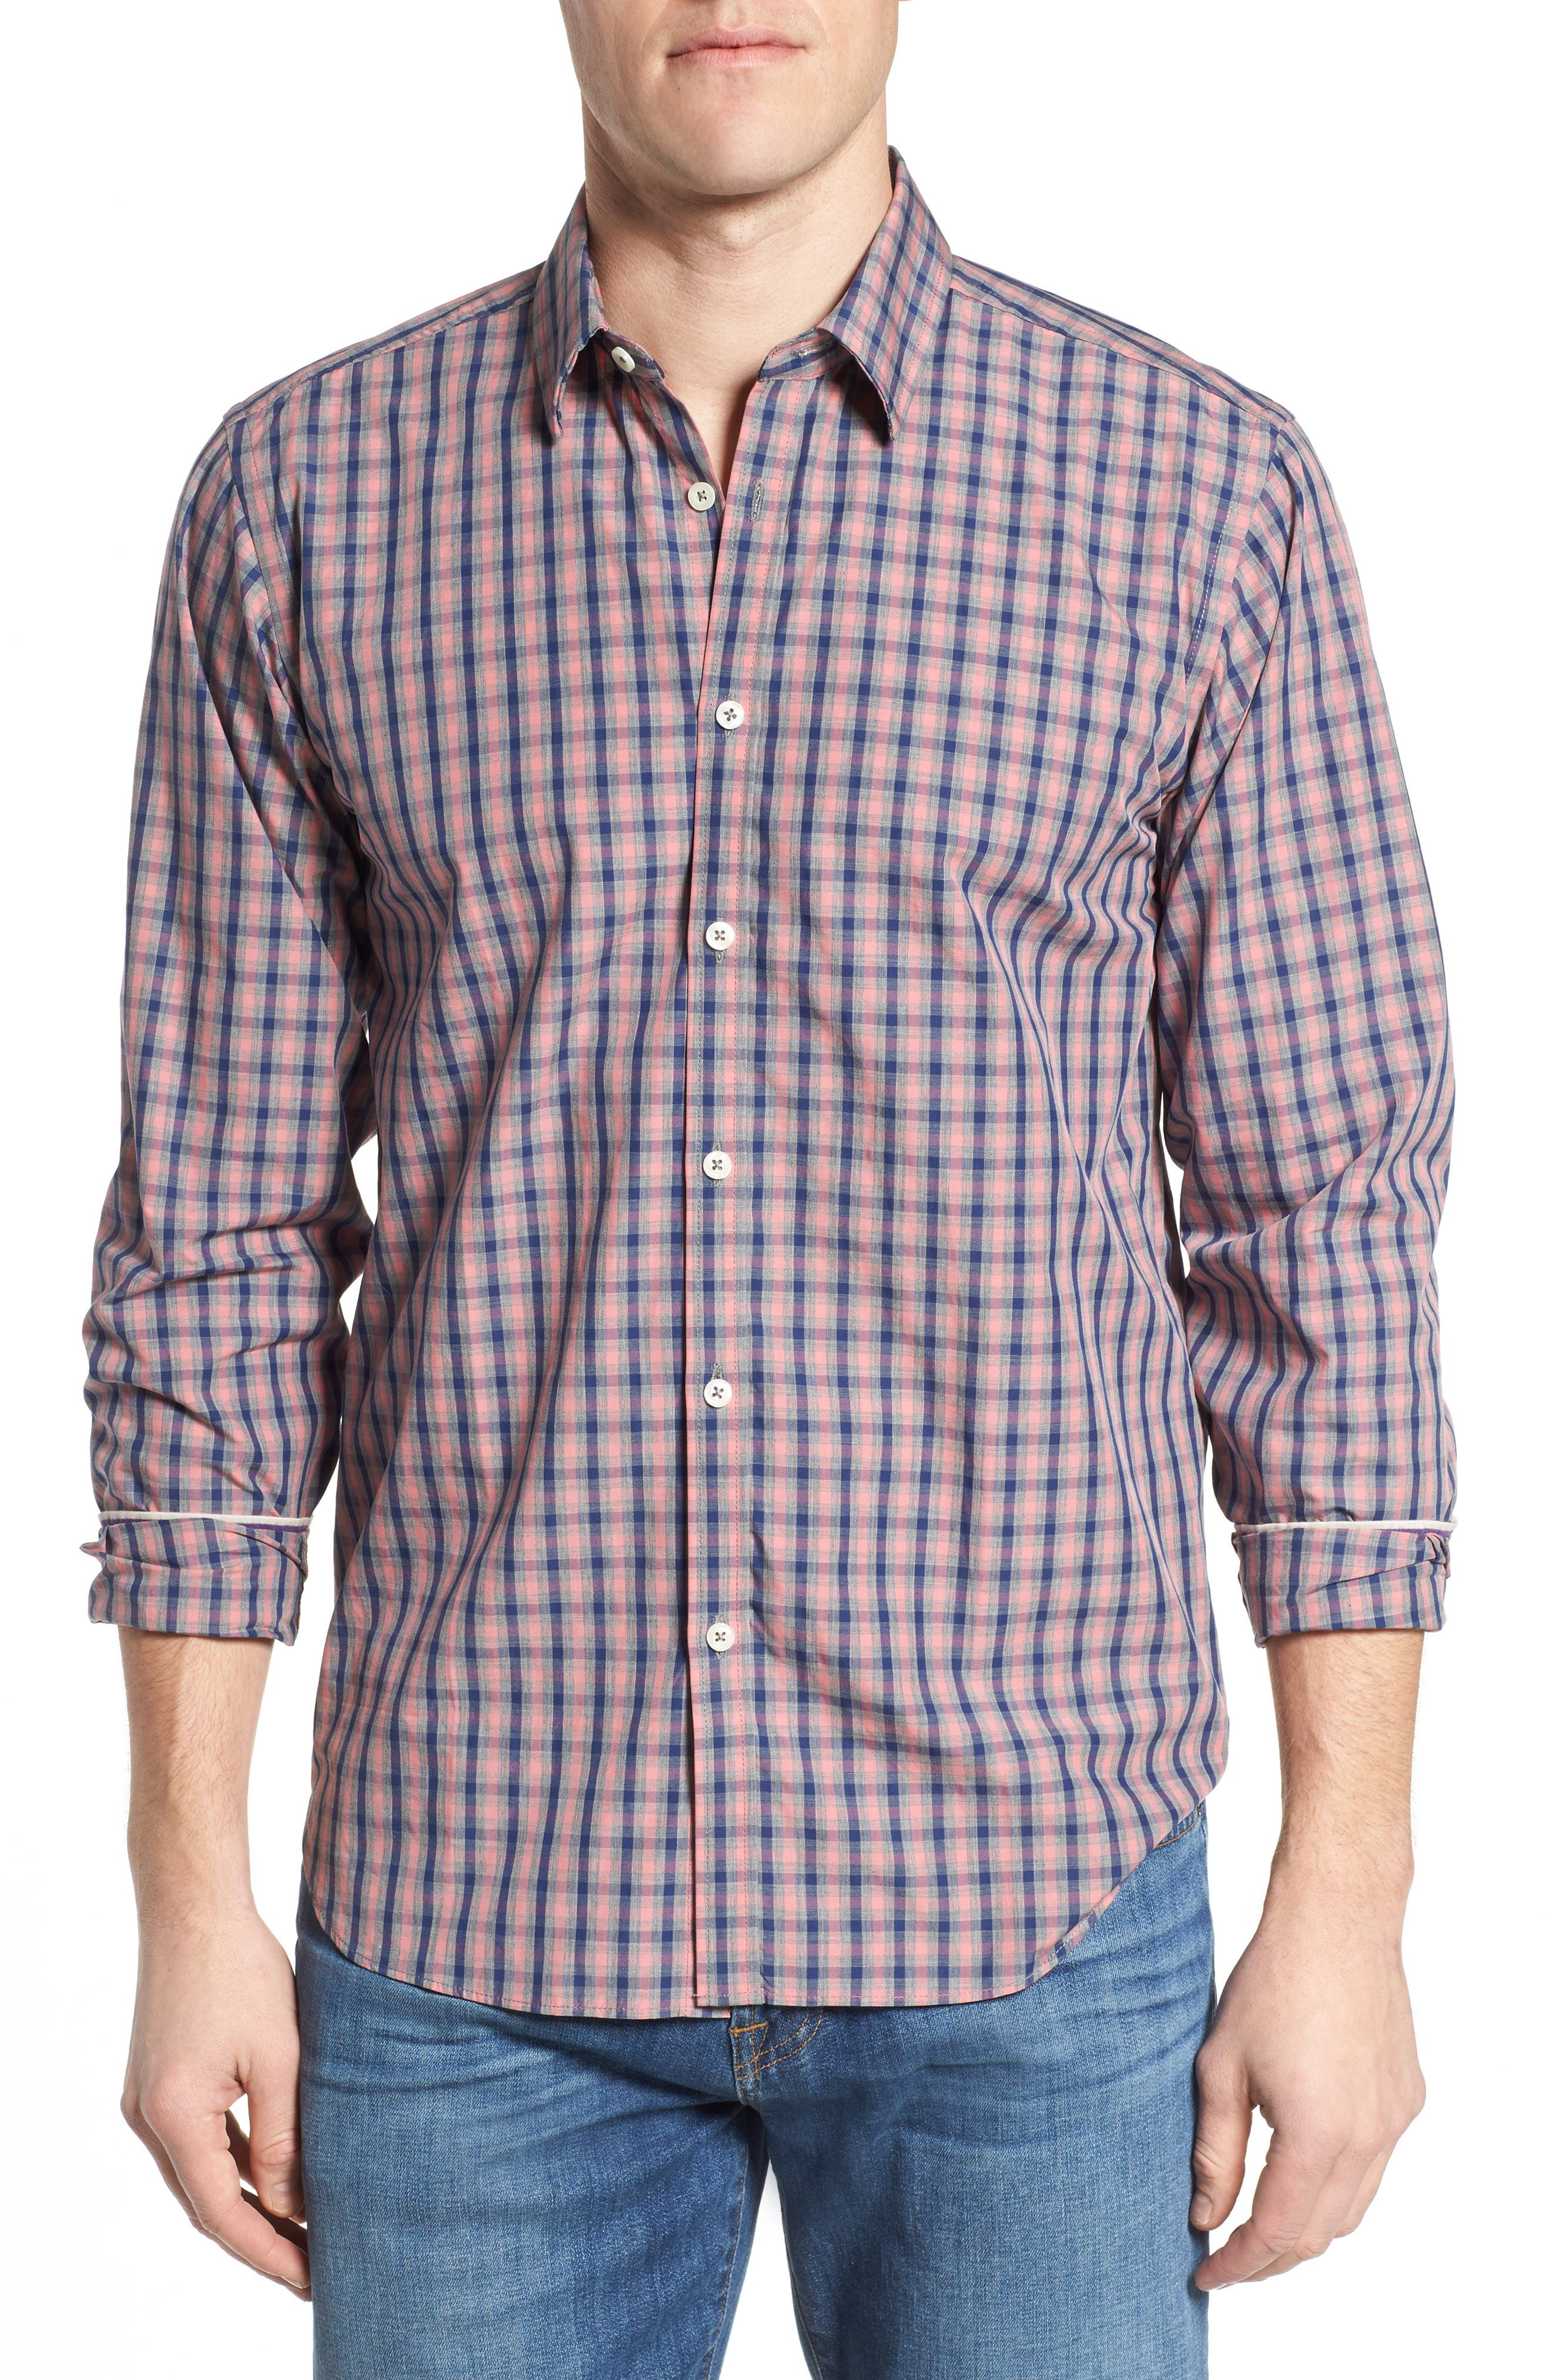 Jeremy Argyle Fitted Plaid Sport Shirt